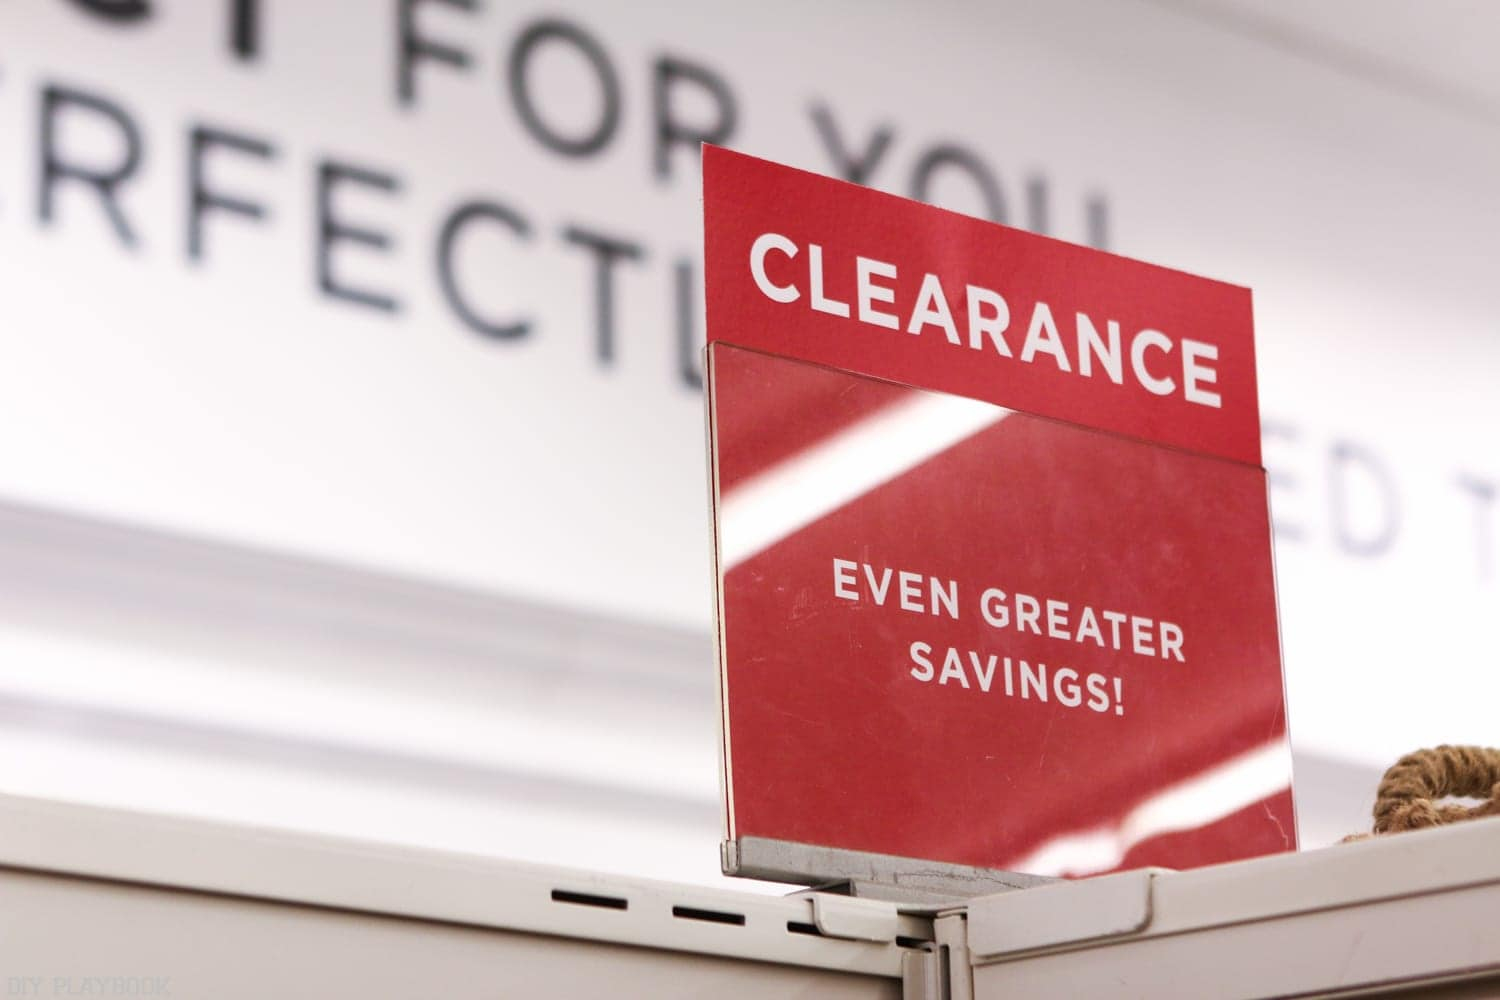 Give the clearance a shot- you can find some great items buried in there